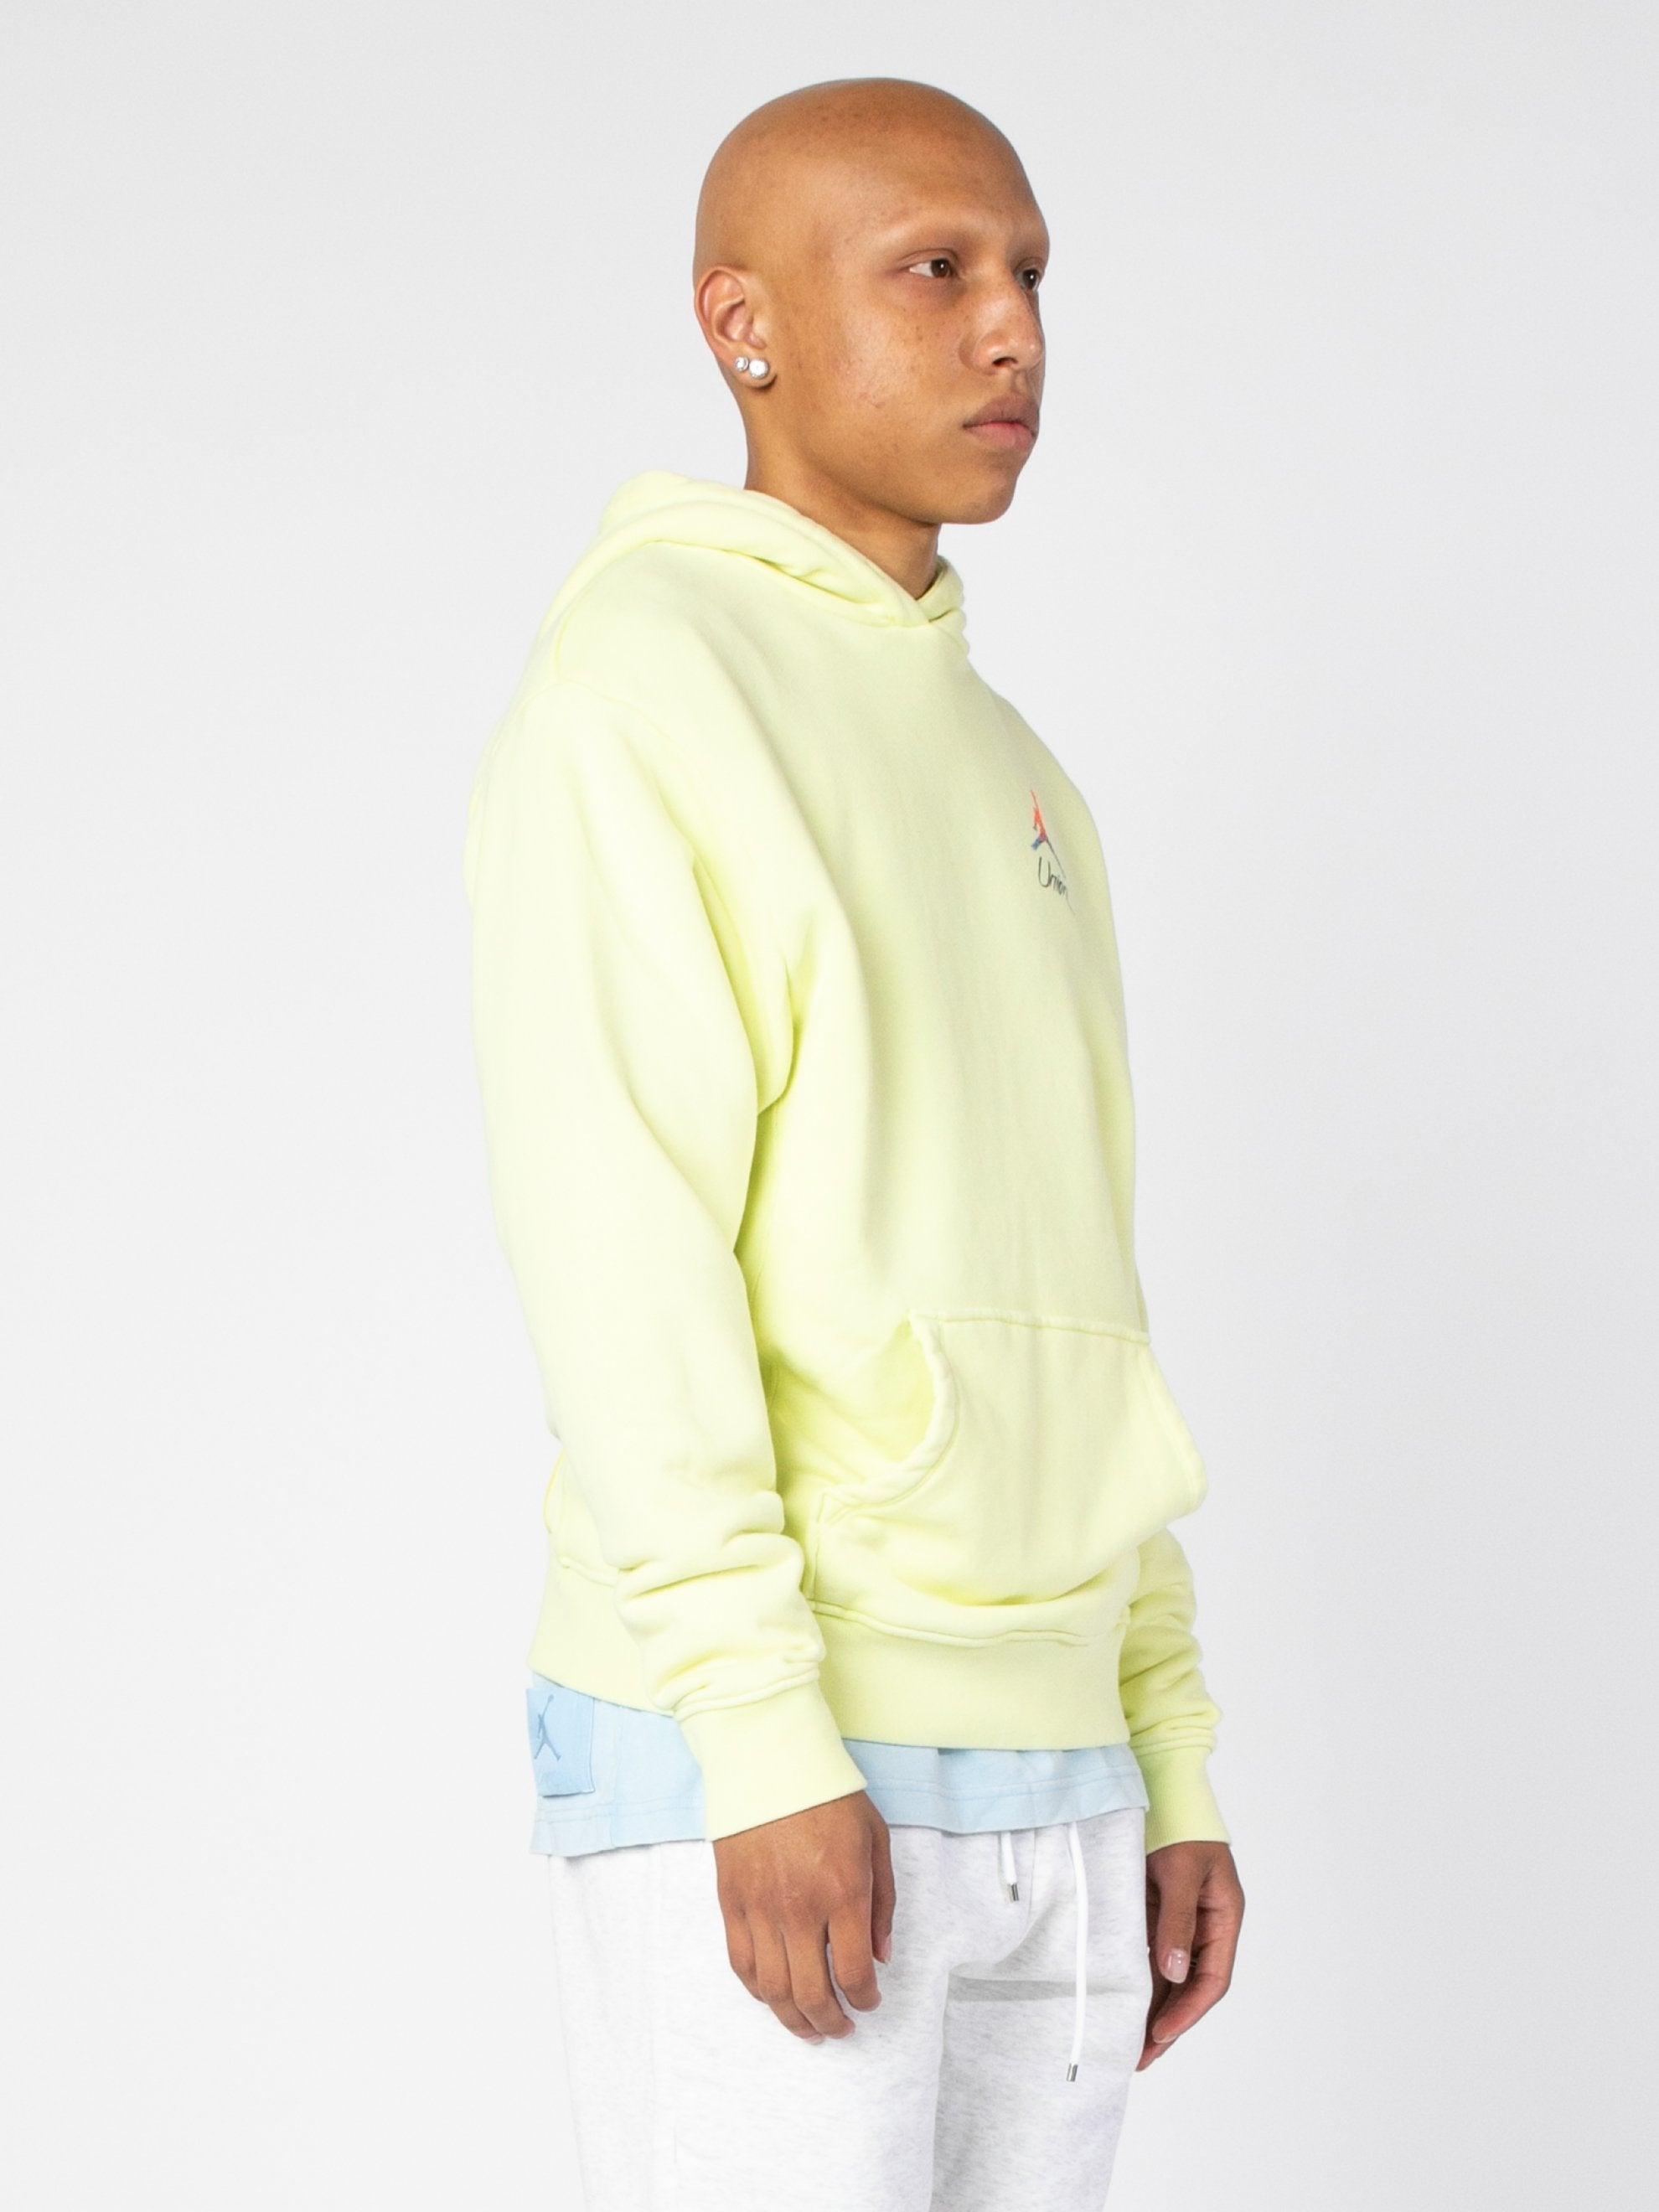 Luminous Green (Pale Yellow) Jordan x Union 2.0 PO Hoody 4